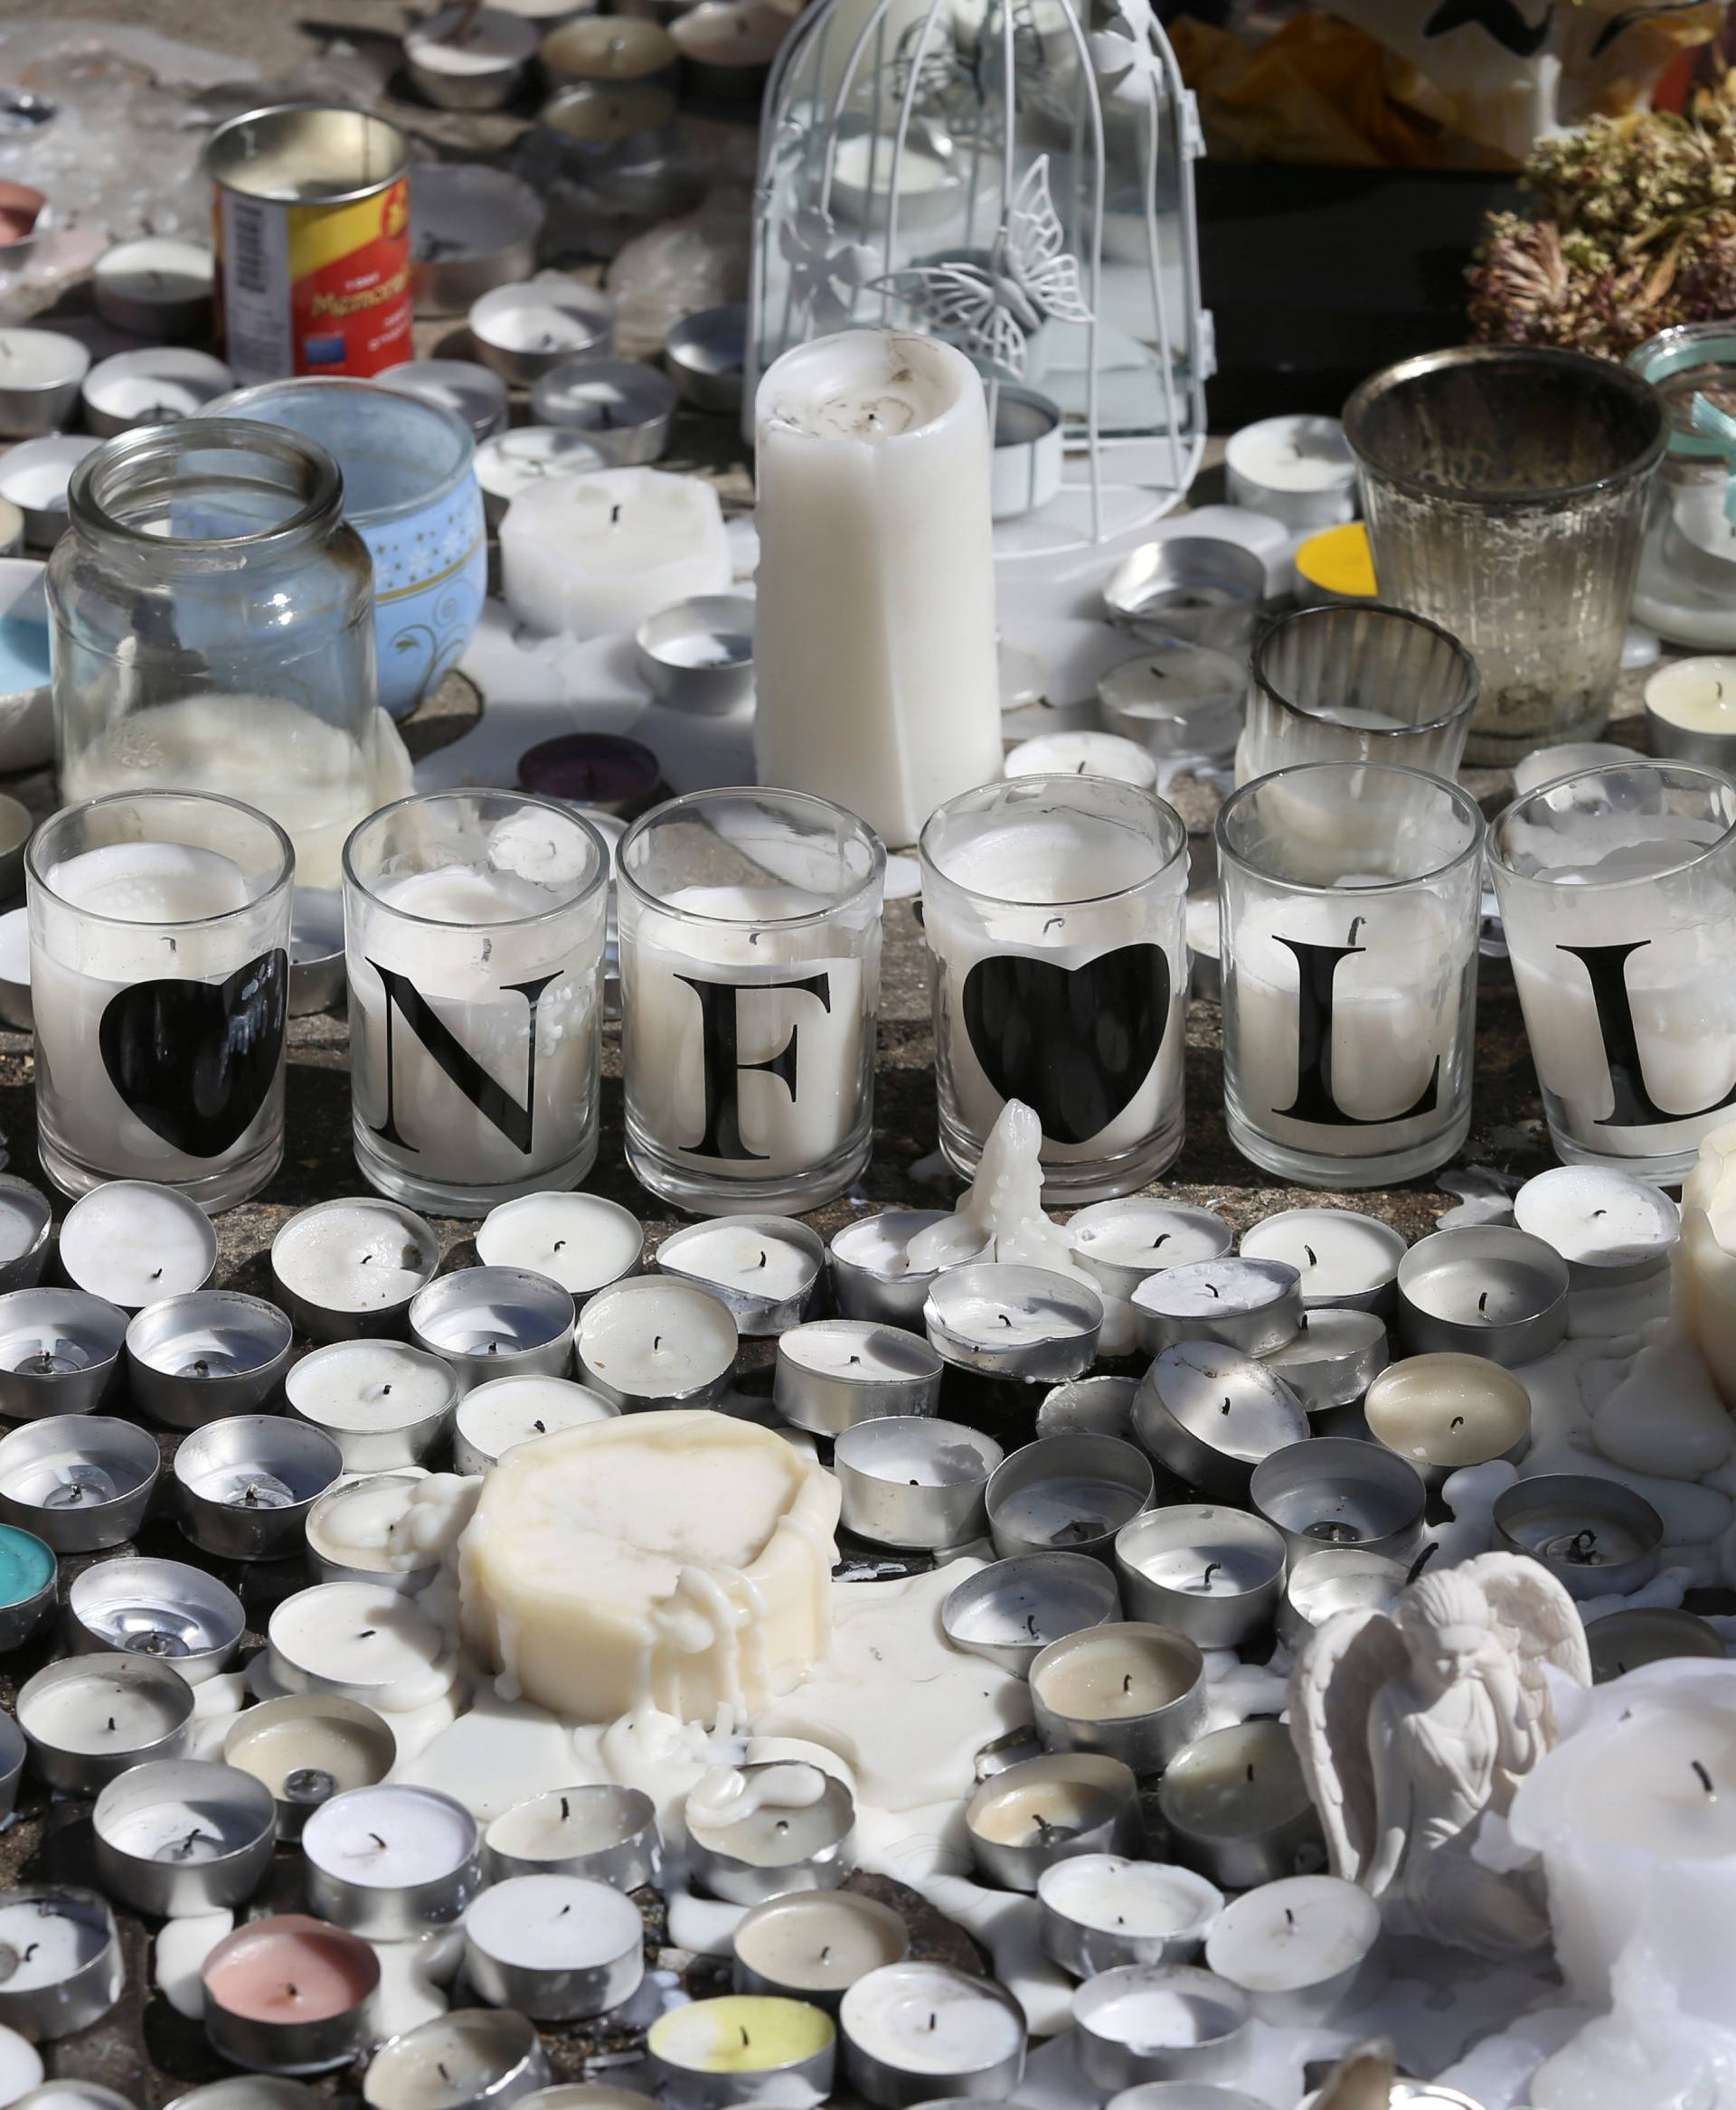 A tribute to the victims of the Grenfell Tower fire is seen in North Kensington, London